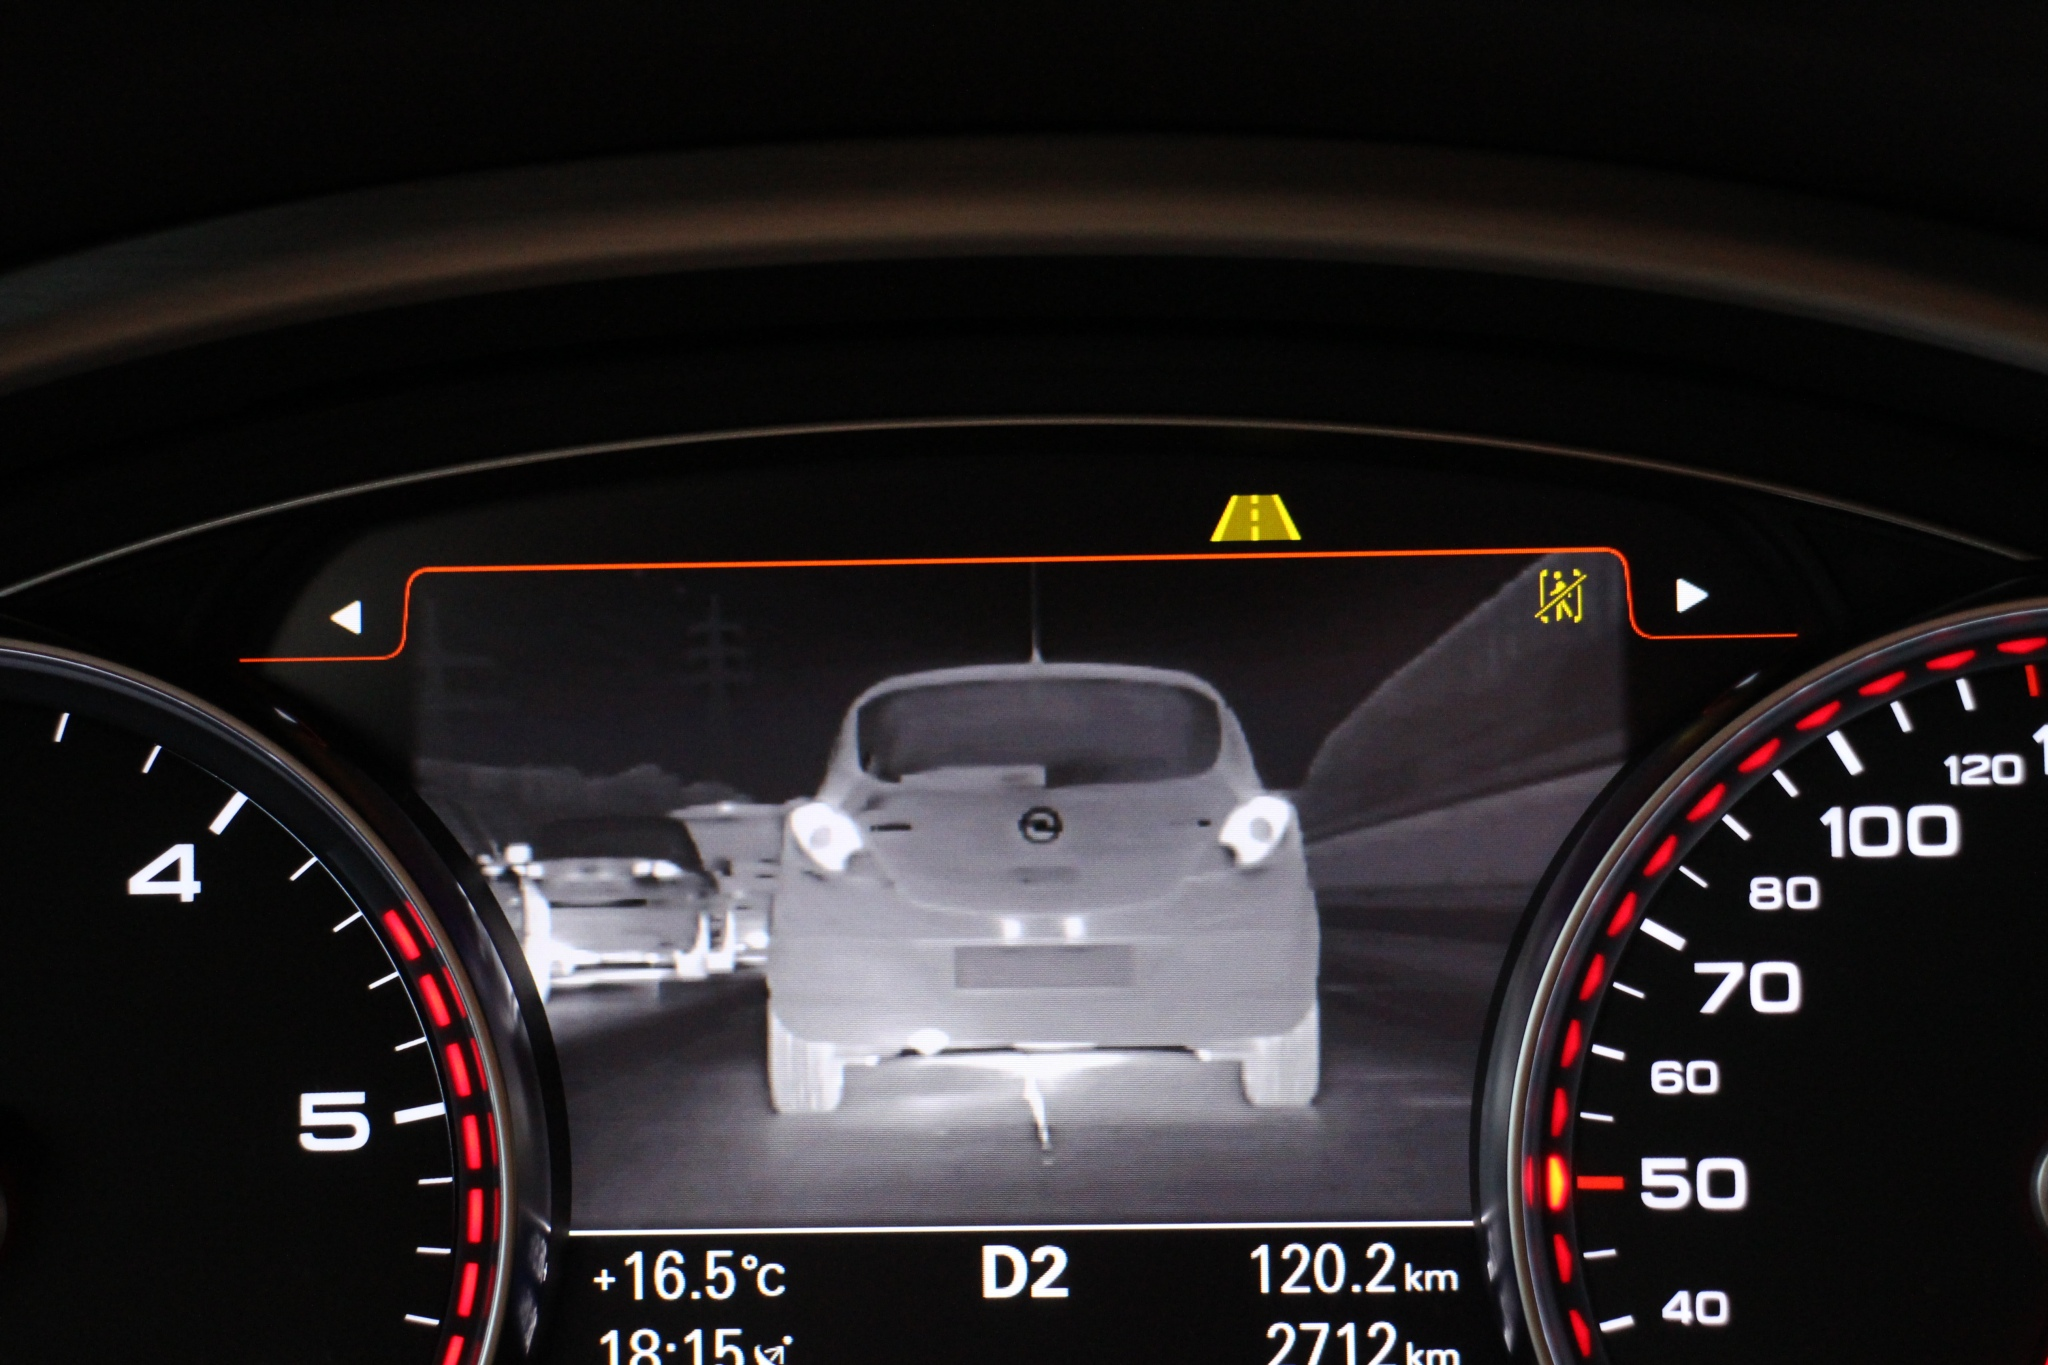 infrared camera on car